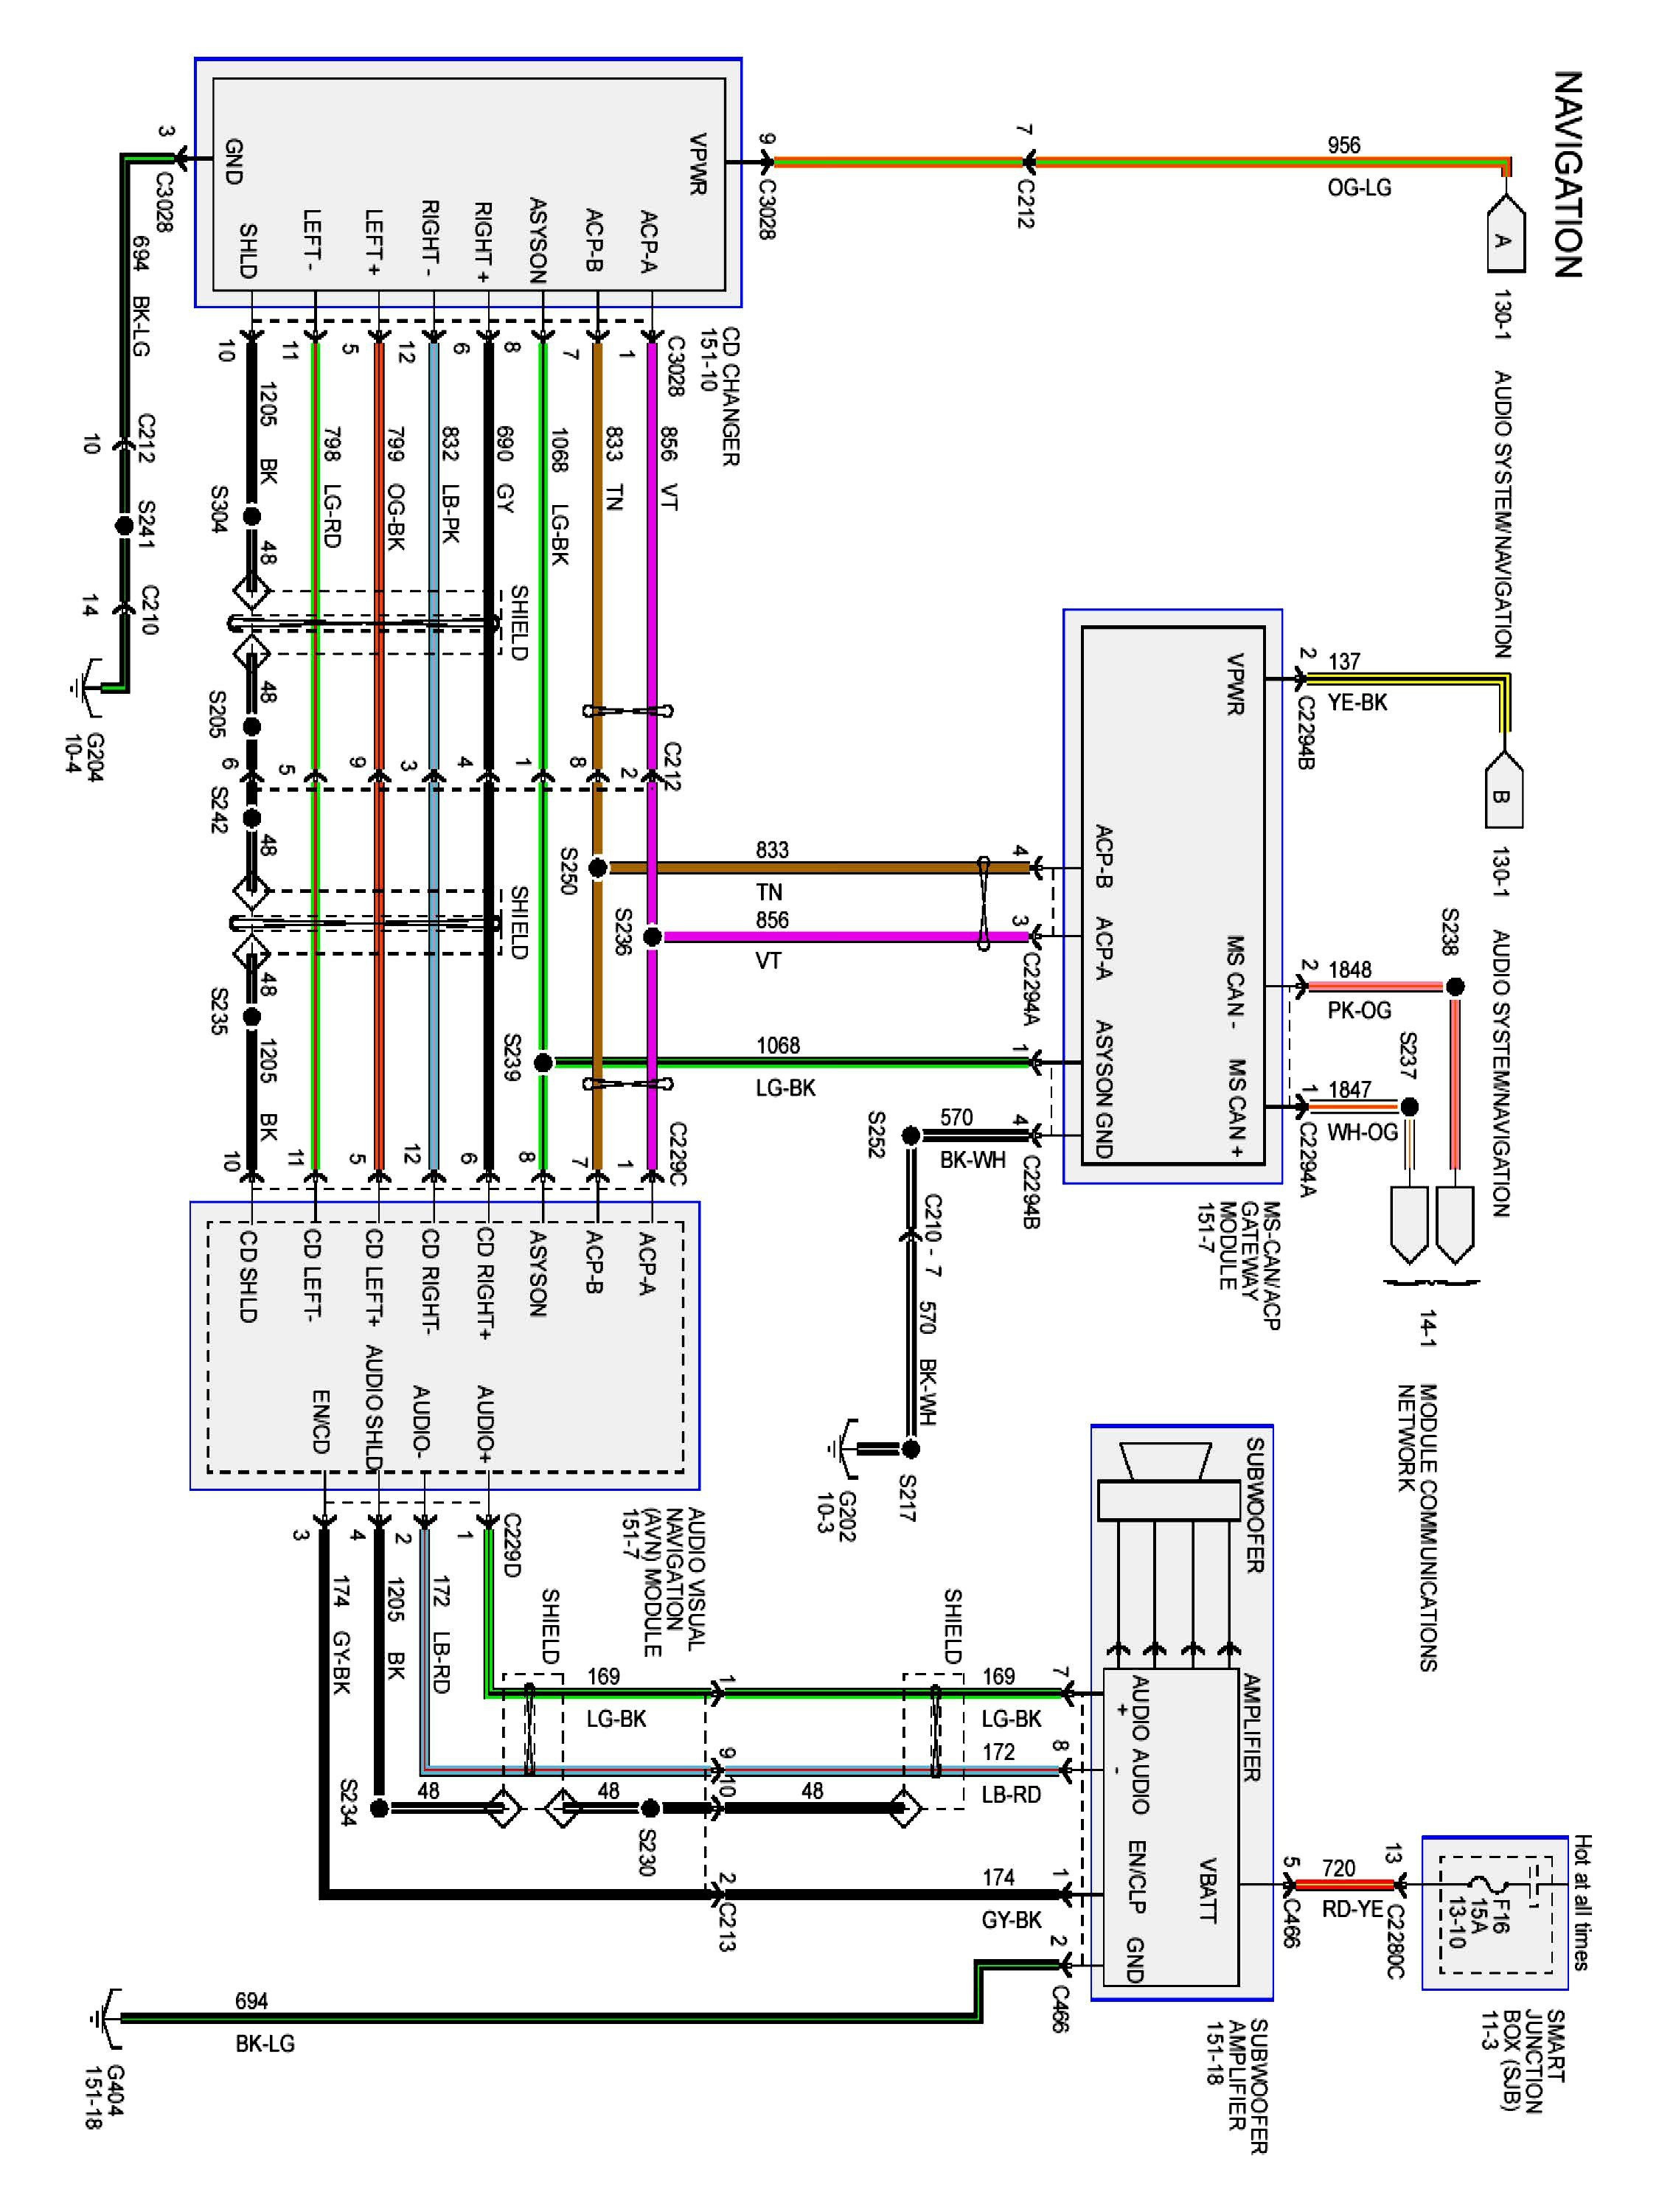 08 Impala Radio Wiring Diagram | Wiring Diagram - 2008 Chevy Impala Radio Wiring Diagram